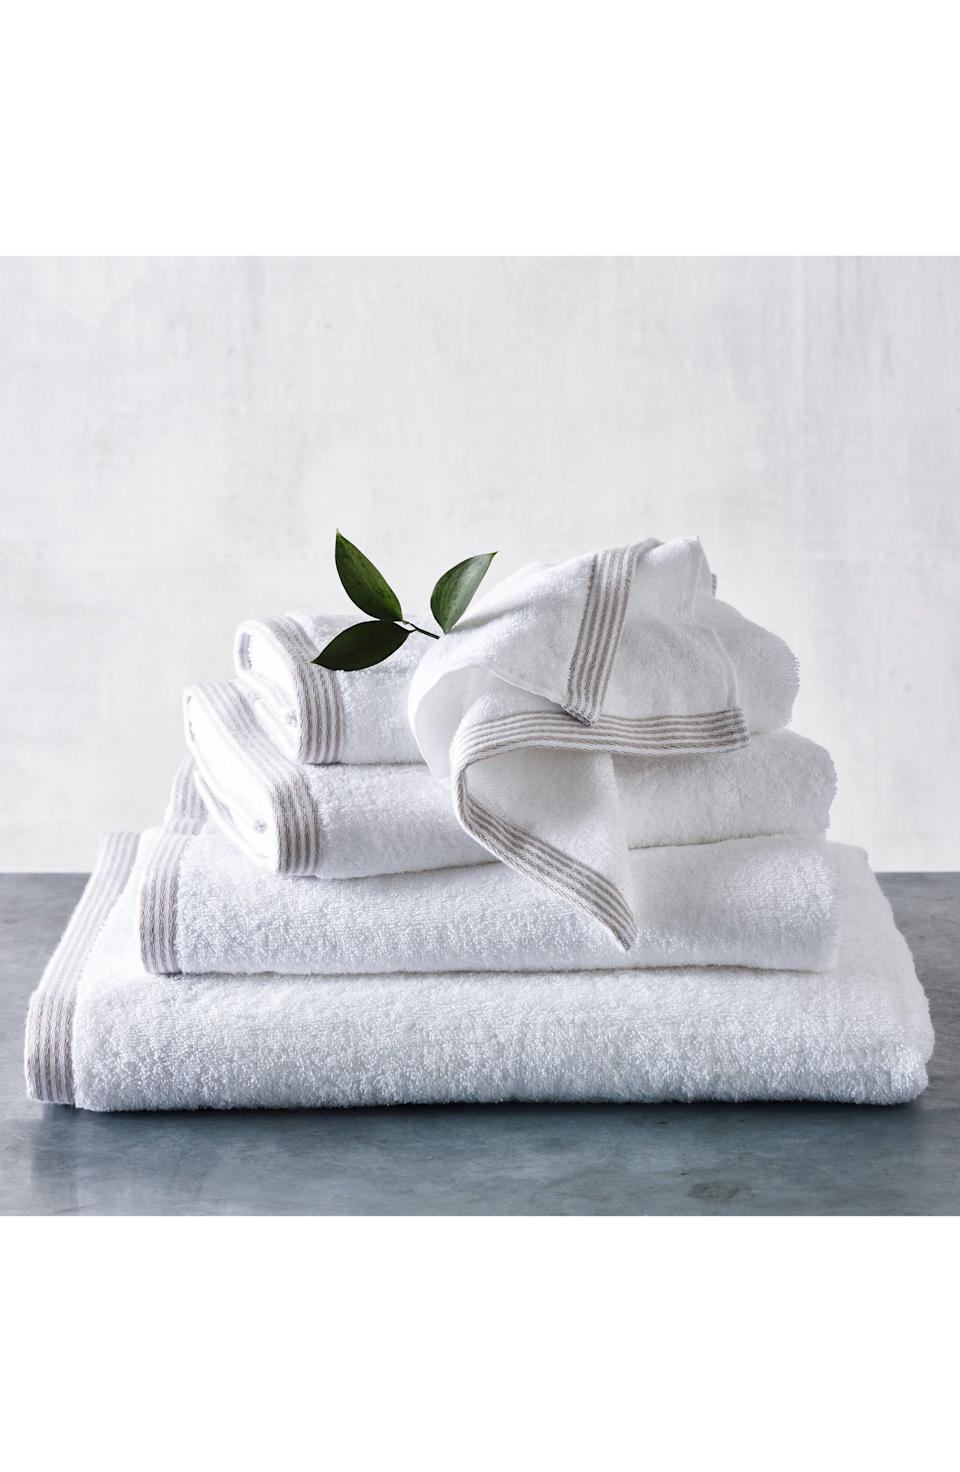 """<p><strong>THE WHITE COMPANY</strong></p><p>nordstrom.com</p><p><strong>$29.90</strong></p><p><a href=""""https://go.redirectingat.com?id=74968X1596630&url=https%3A%2F%2Fshop.nordstrom.com%2Fs%2Fthe-white-company-color-stripe-border-super-jumbo-towel%2F5503823&sref=https%3A%2F%2Fwww.veranda.com%2Fluxury-lifestyle%2Fg33484341%2Fnordstrom-anniversary-sale-2020%2F"""" rel=""""nofollow noopener"""" target=""""_blank"""" data-ylk=""""slk:Discover"""" class=""""link rapid-noclick-resp"""">Discover</a></p><p>There is something so understated and elegant about a high-quality, fluffy white towel, and we love this jumbo-sized version by <a href=""""https://www.thewhitecompany.com/us/"""" rel=""""nofollow noopener"""" target=""""_blank"""" data-ylk=""""slk:The White Company"""" class=""""link rapid-noclick-resp"""">The White Company</a>. The striped border at the bottom is a classic touch, and the absorbent combed-cotton yarn is woven to last! </p>"""